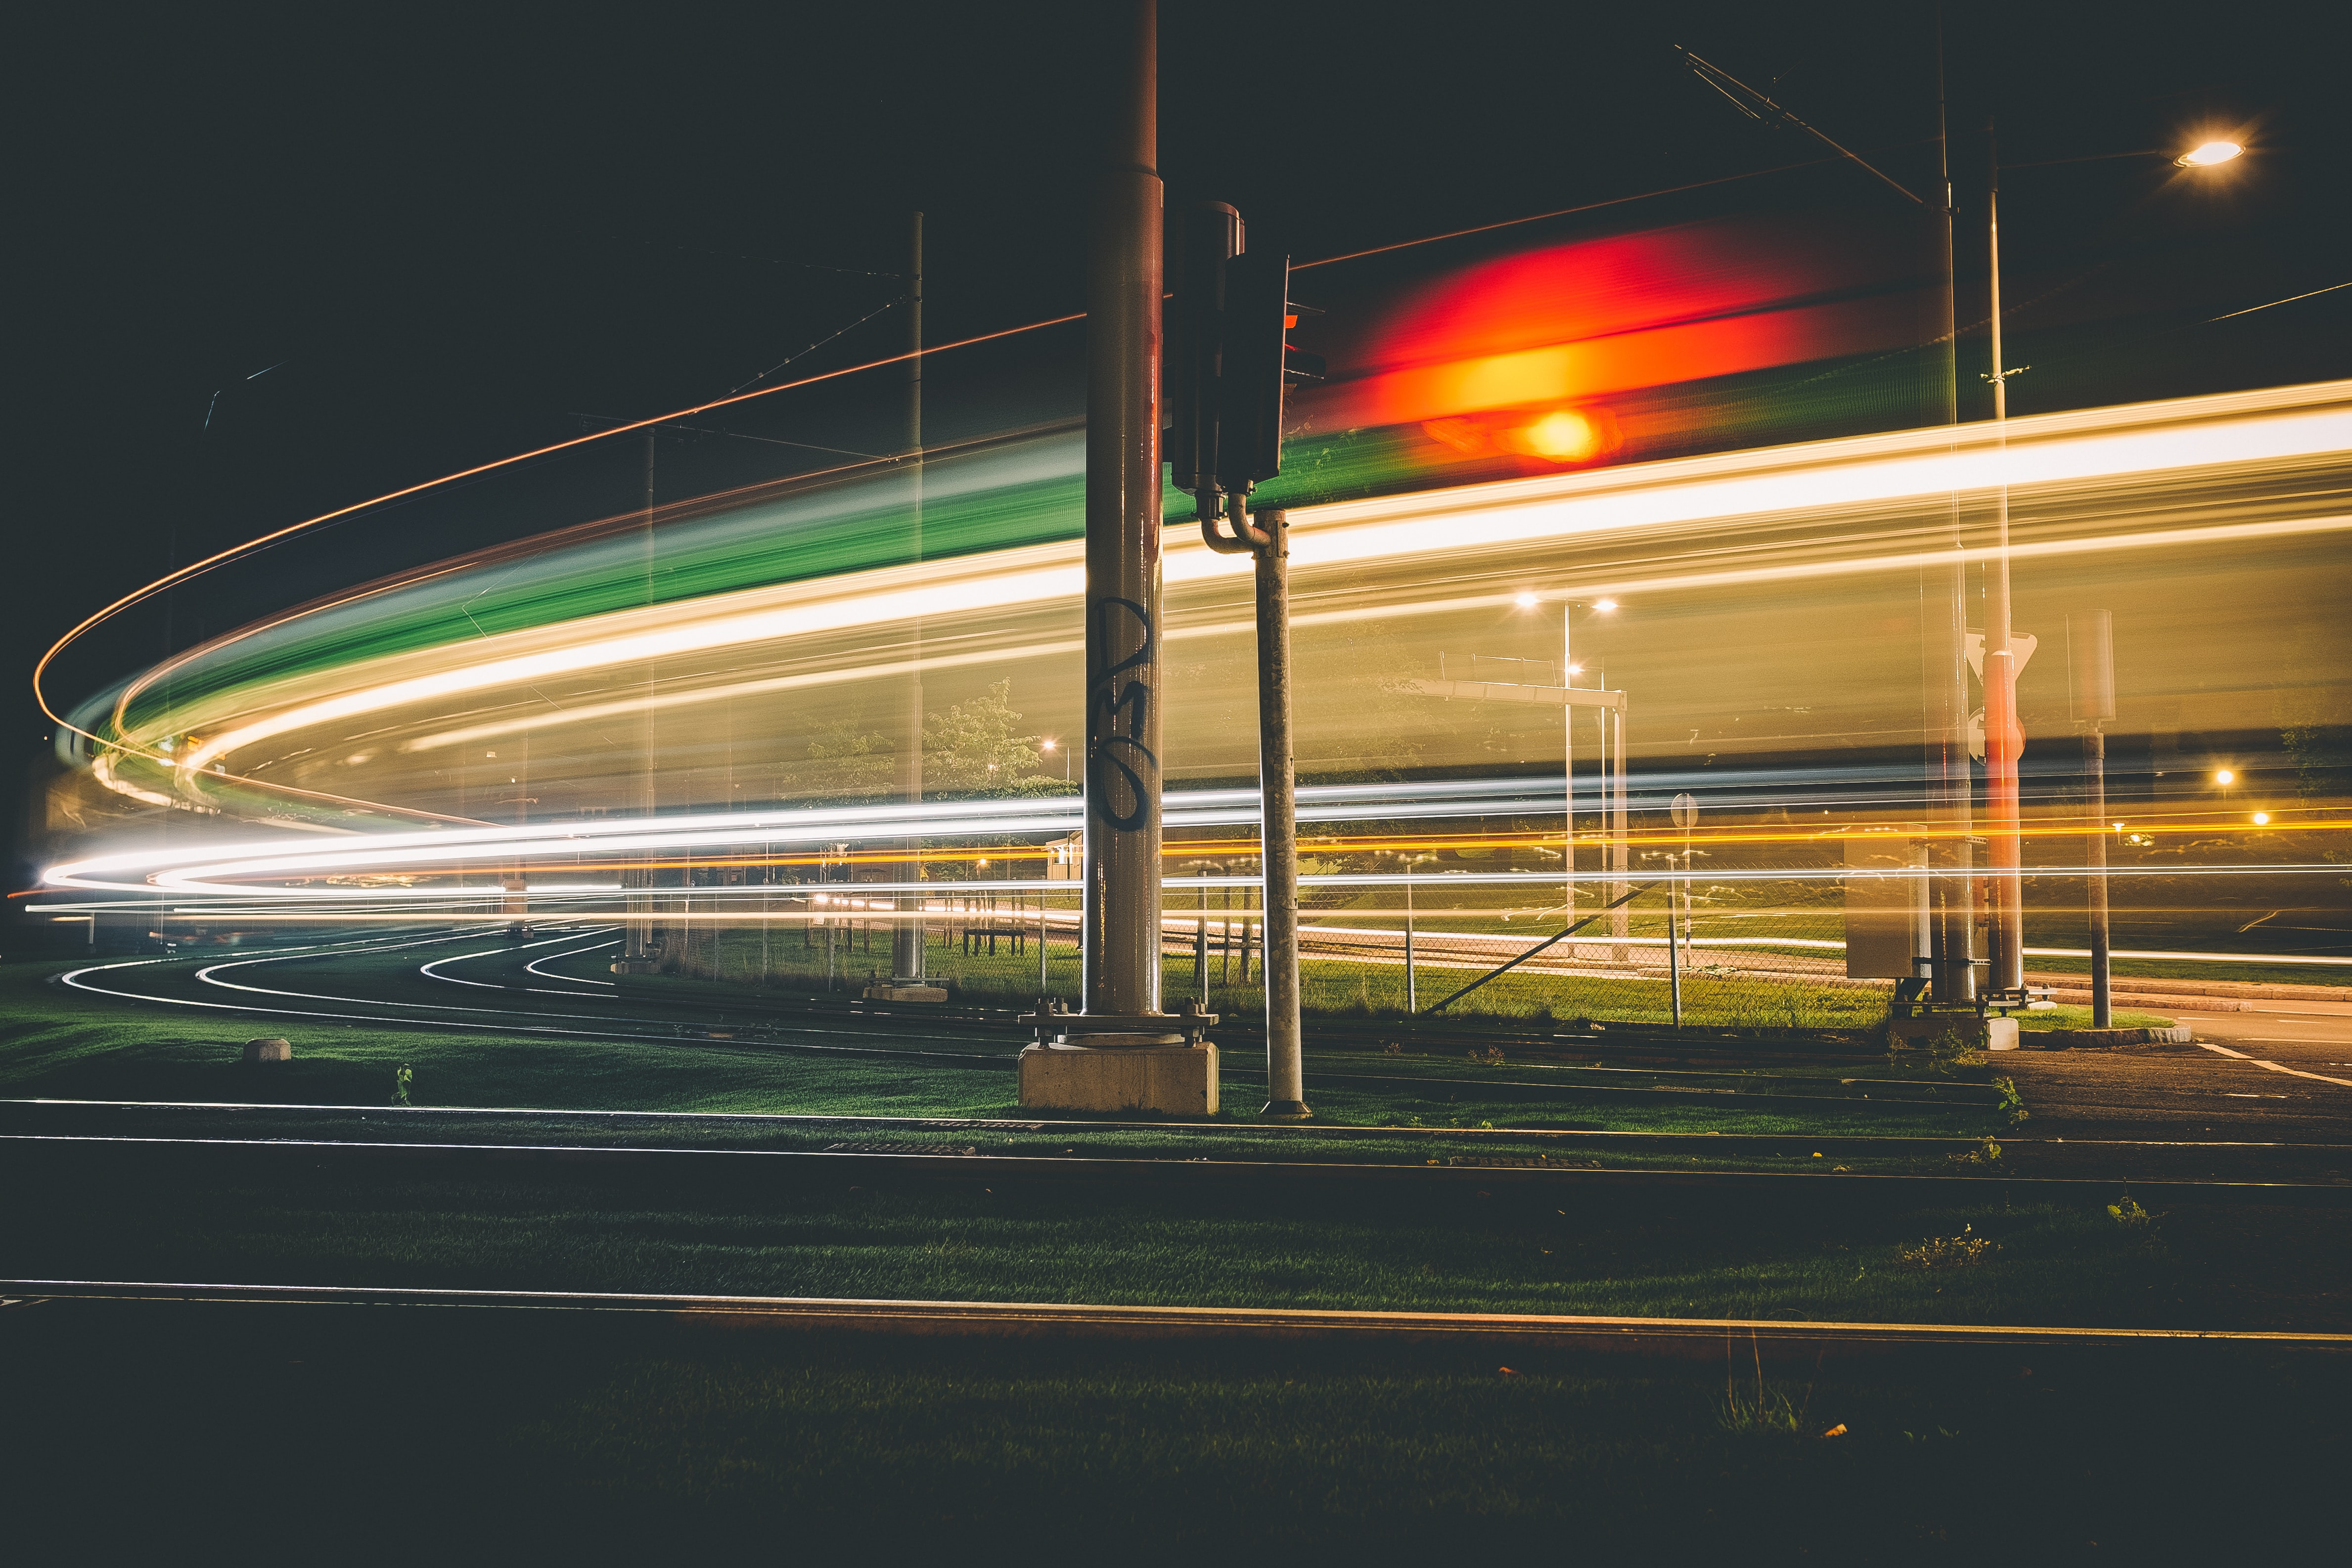 A cool capture of light trails in the urban city of Gothenburg